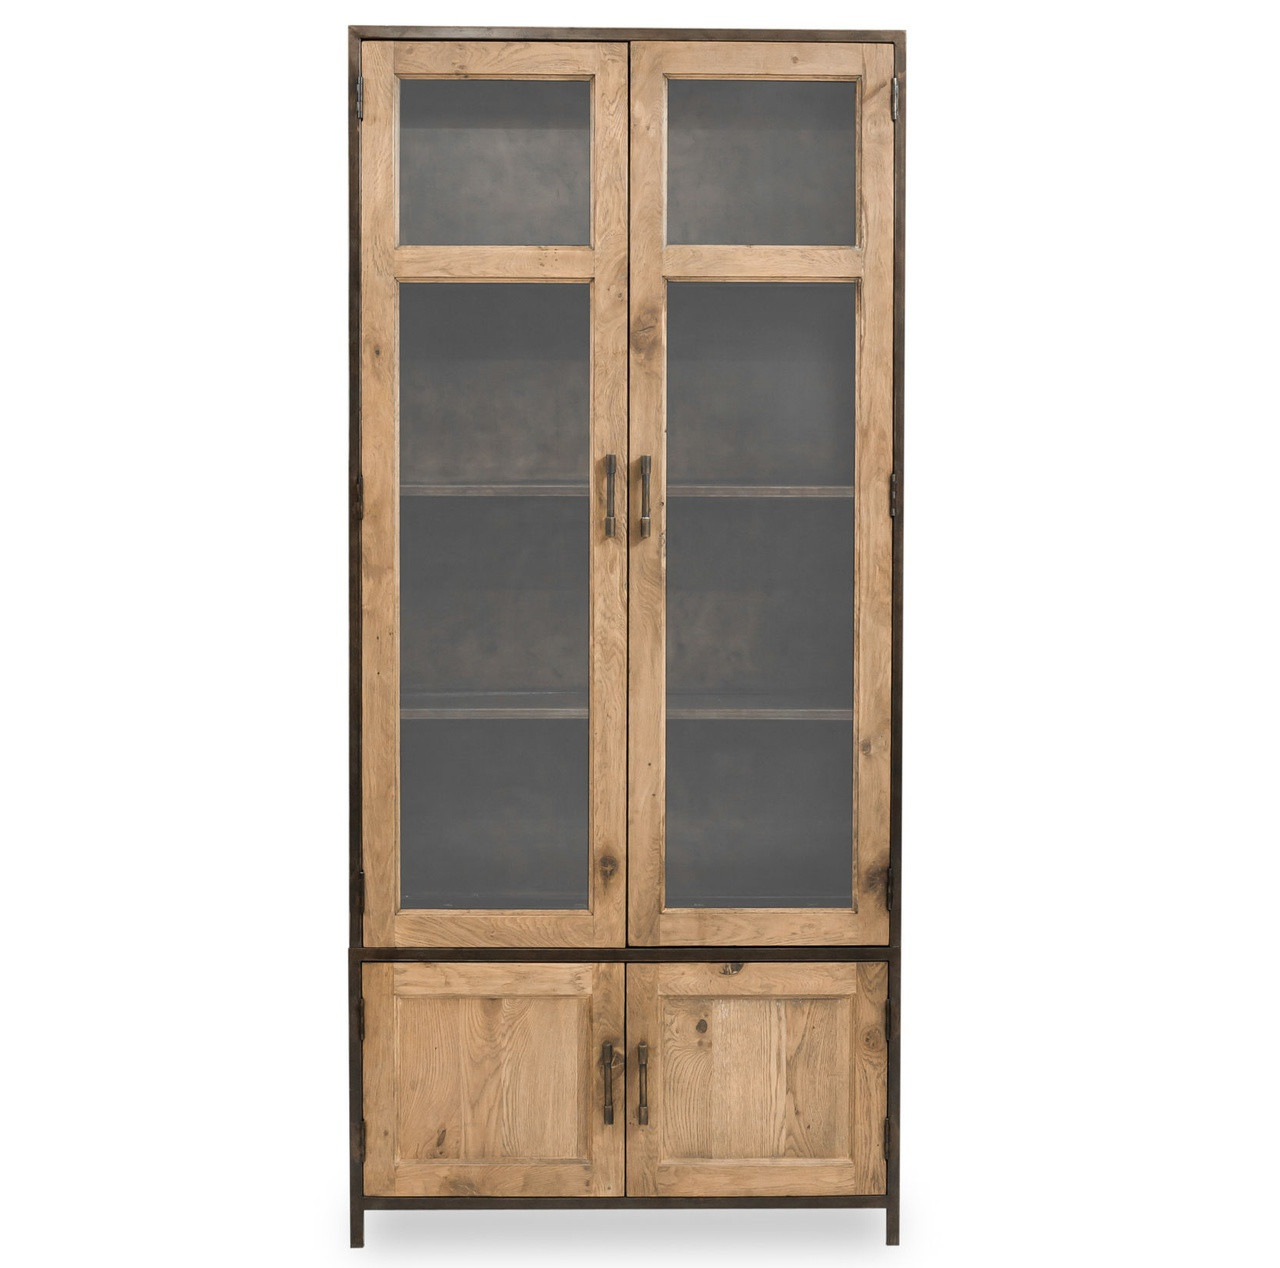 Bedroom Mirrored Furniture Dominic Industrial Metal Oak Tall Cabinet With Glass